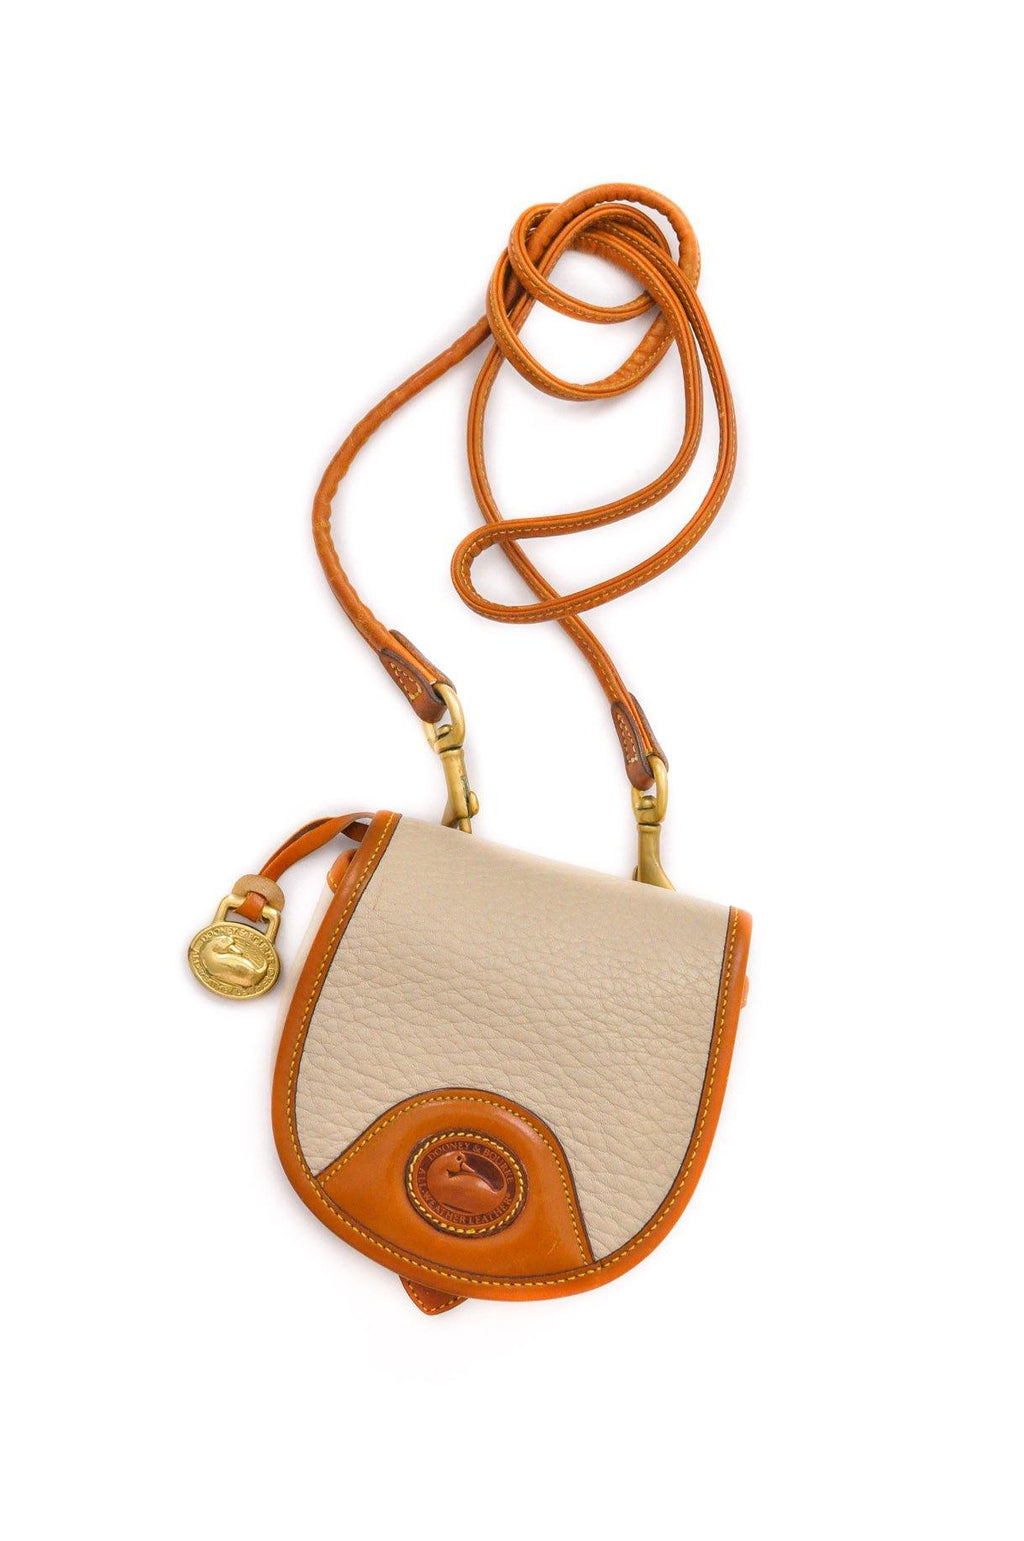 Dooney and Bourke Crossbody Beltbag Pouch